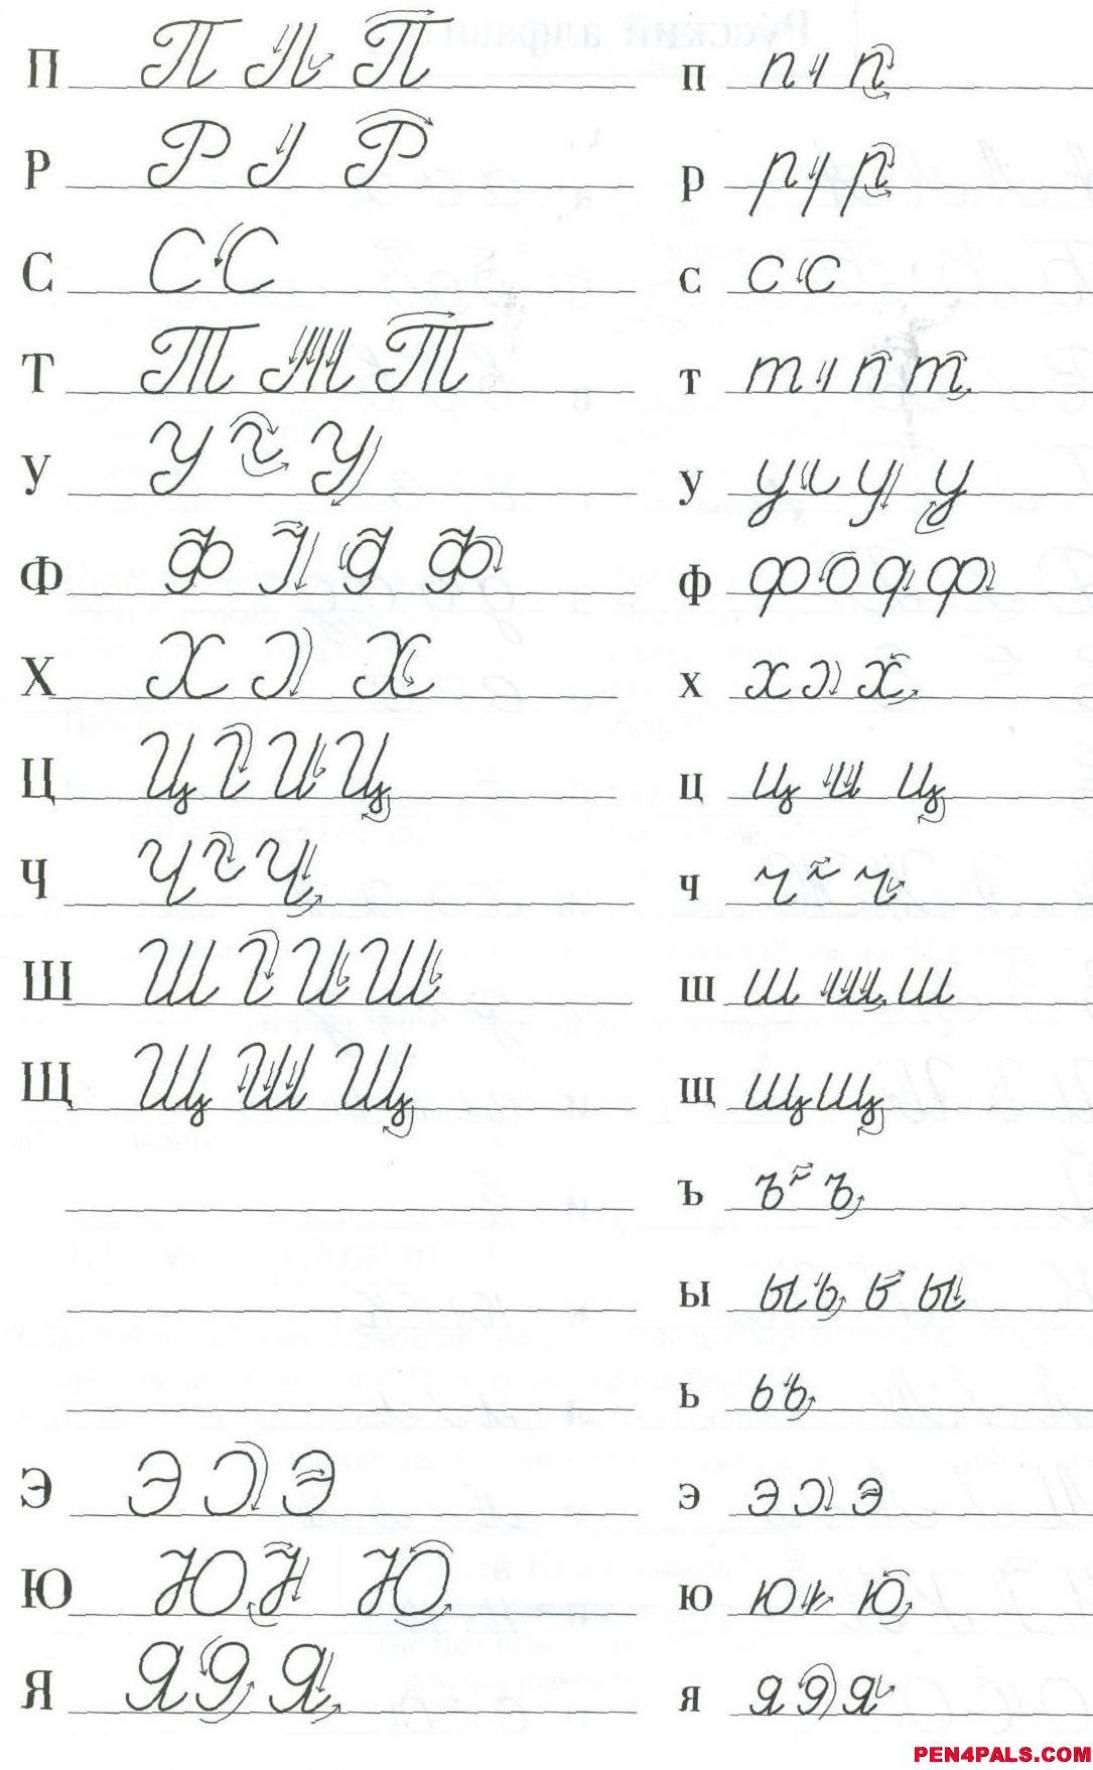 Read And Write Russian Cursive For Adults Video